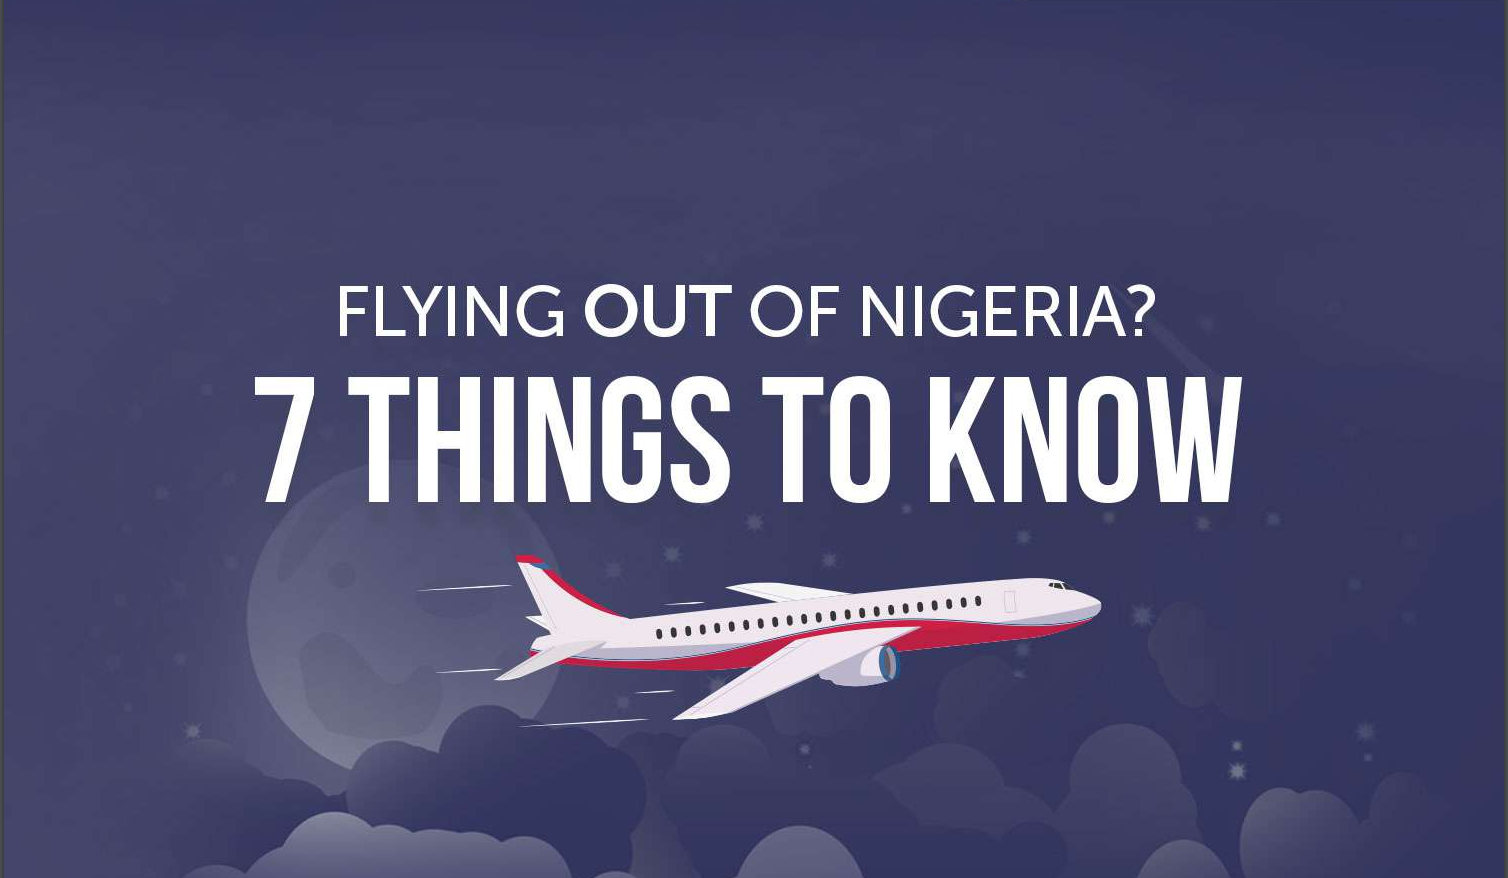 Guidelines for Flying out of Nigeria